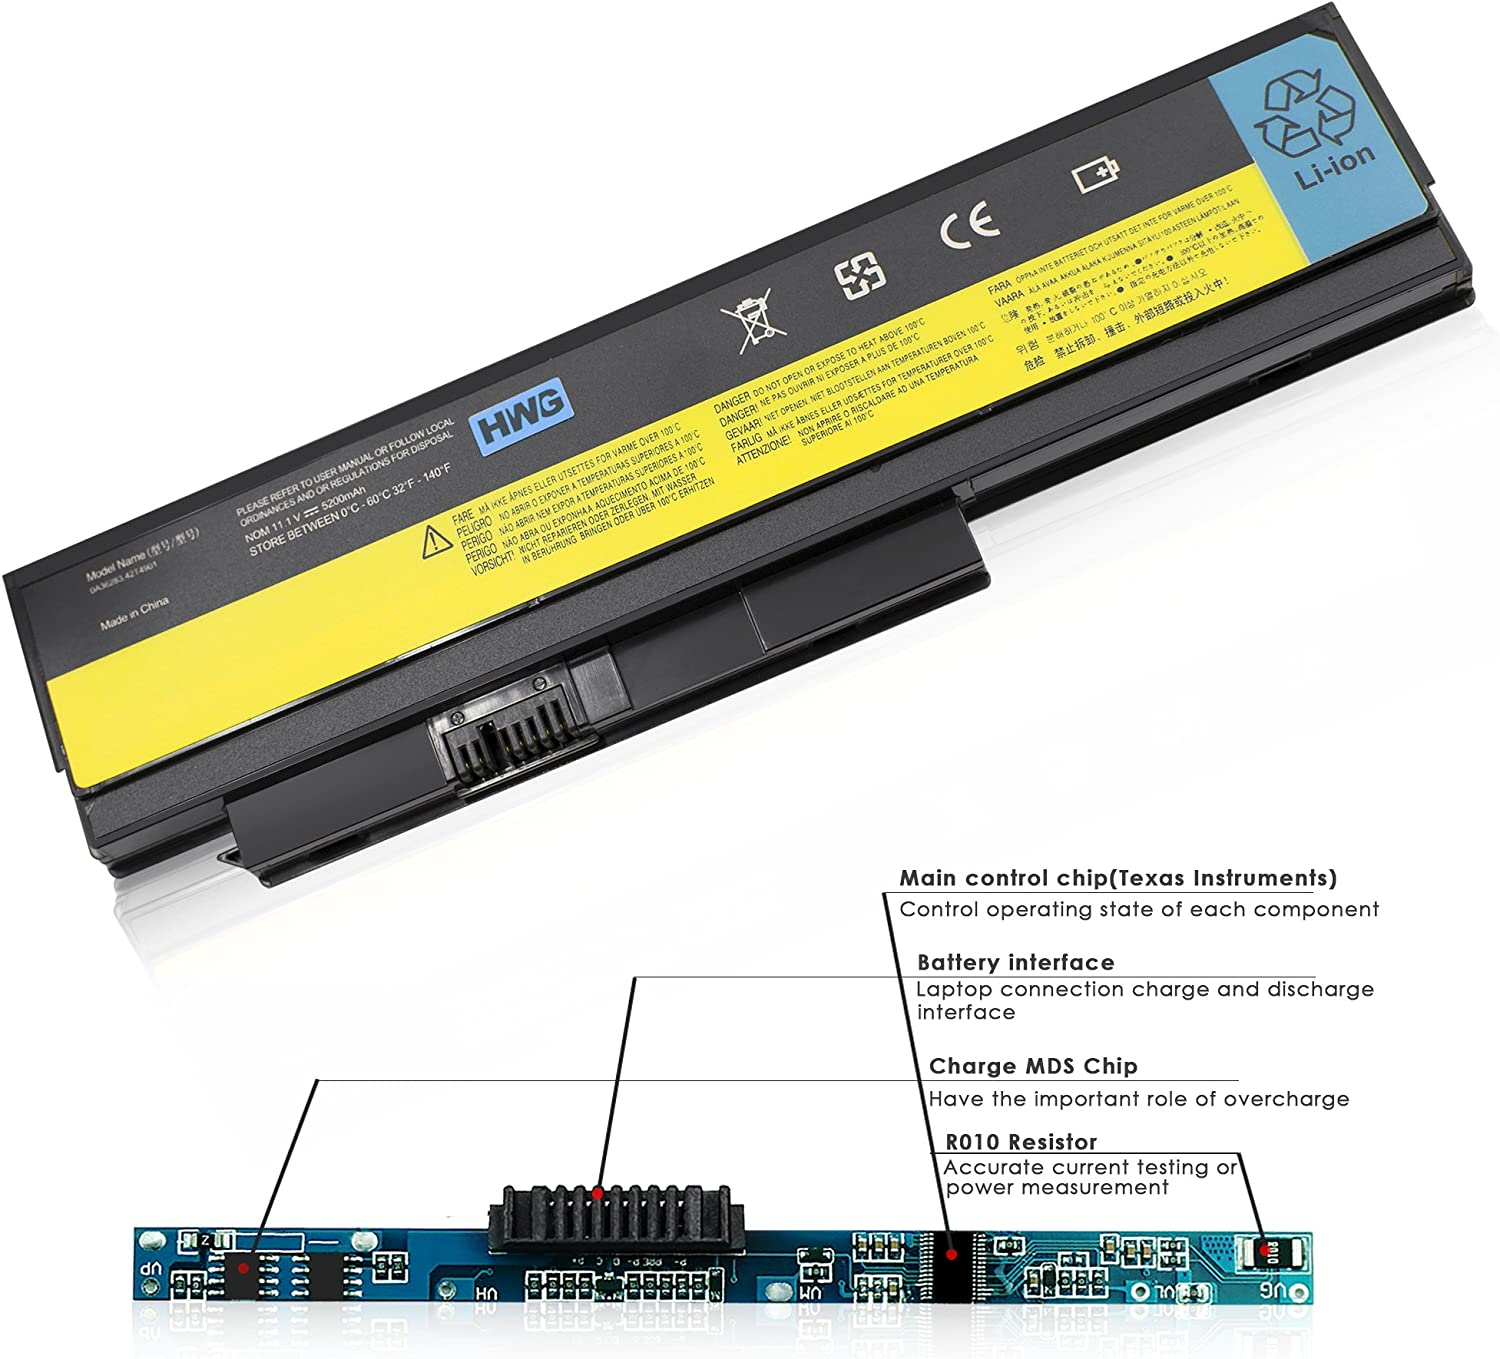 HWG X220 6 Cells 5200mAh Battery for Lenovo ThinkPad X220 X220i X220s 0A36281 0A36282 0A36283 42T4863 42Y4864 42T4867 42Y4868 42T4873 42Y4874 42T4901 42T4902 42Y4940